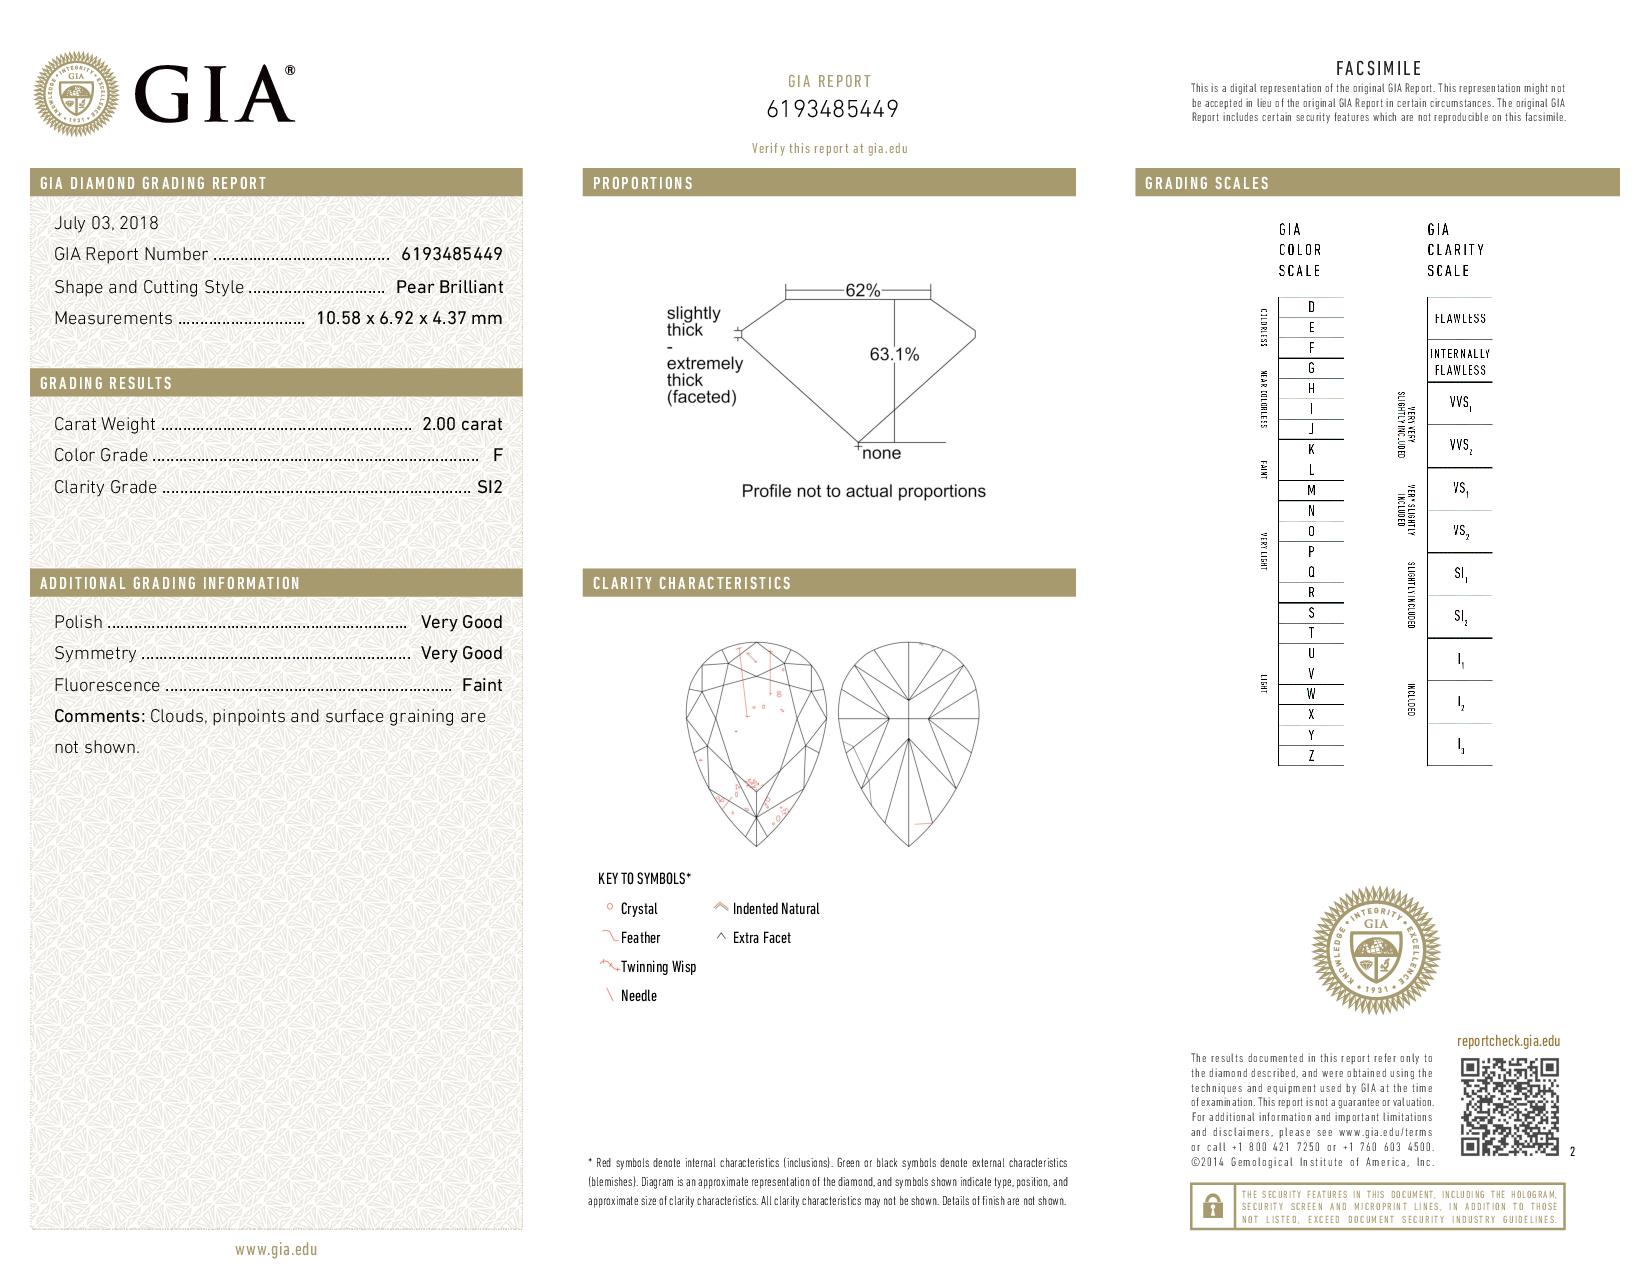 This is a 2.00 carat pear shape, F color, SI2 clarity natural diamond accompanied by a GIA grading report.